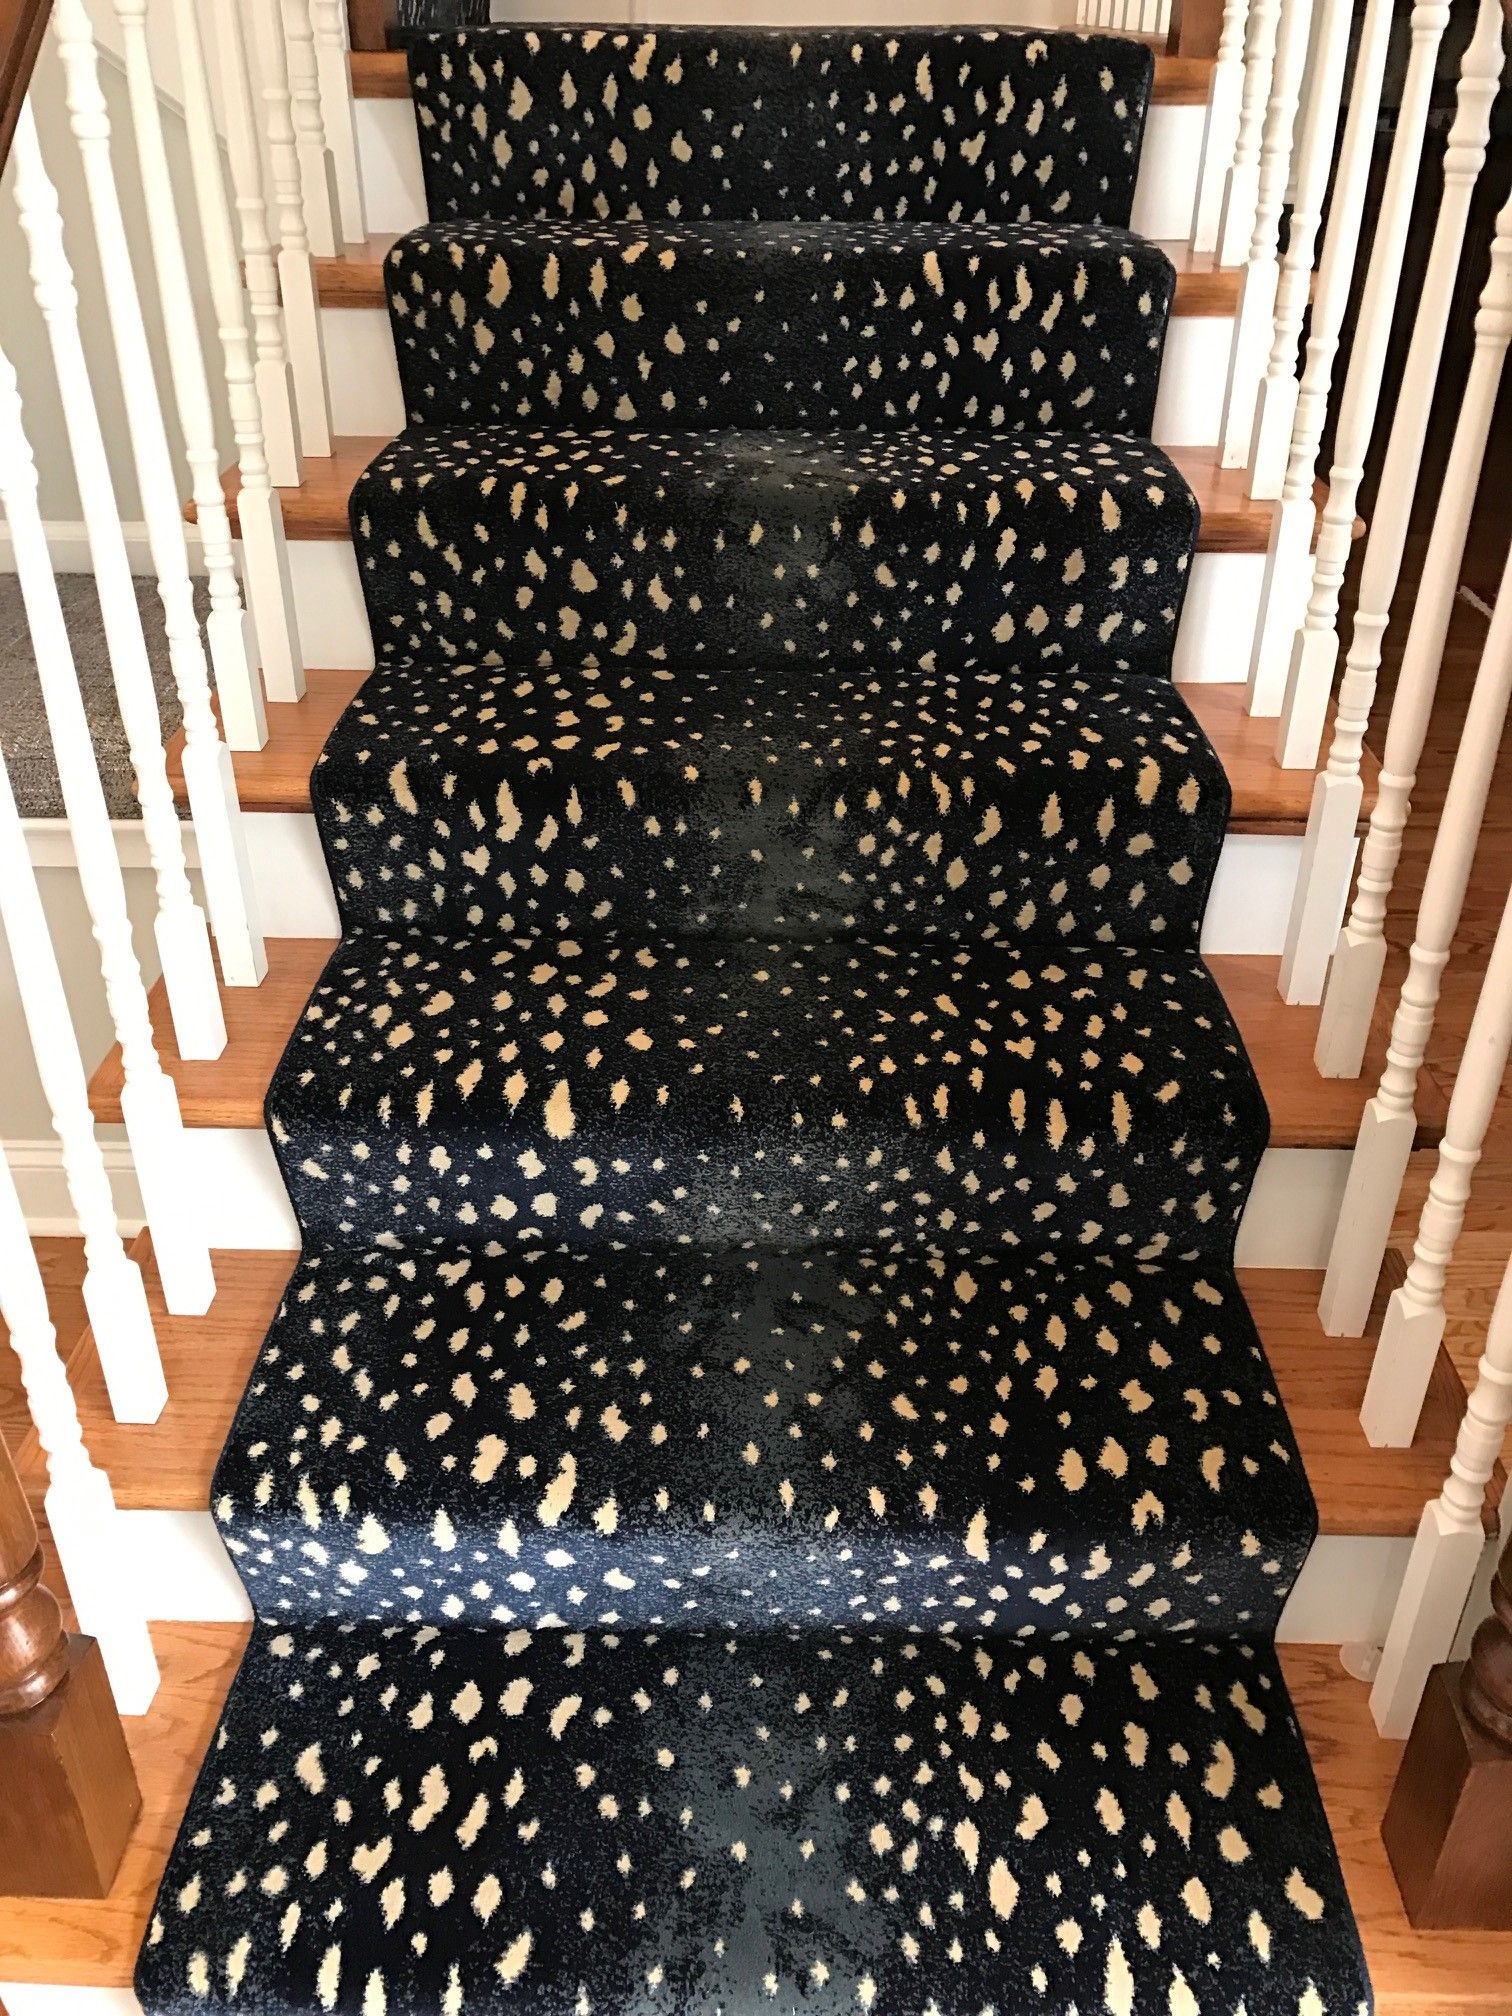 Patterned Stair Runner Staircase Animal Print Carpet Wood Newel   Stair Carpets For Sale   Wool   Flooring   Skid   Anderson Tuftex   Mallorca